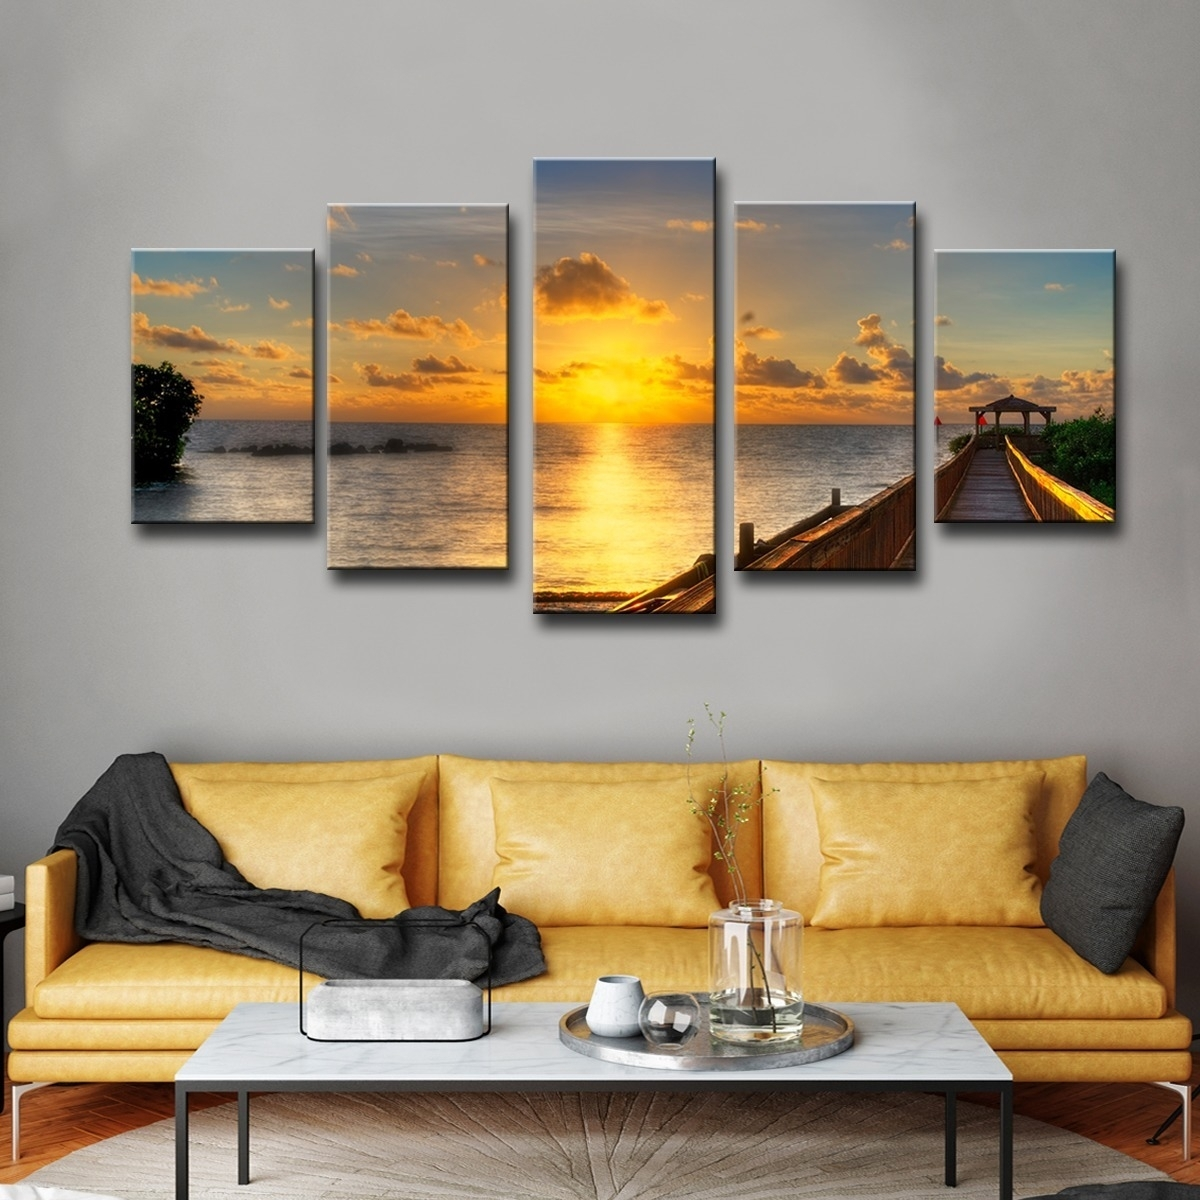 Shop Havenside Home Key's Sunrise' 5 Piece Set Canvas Wall Art Regarding Recent Overstock Wall Art (View 16 of 20)